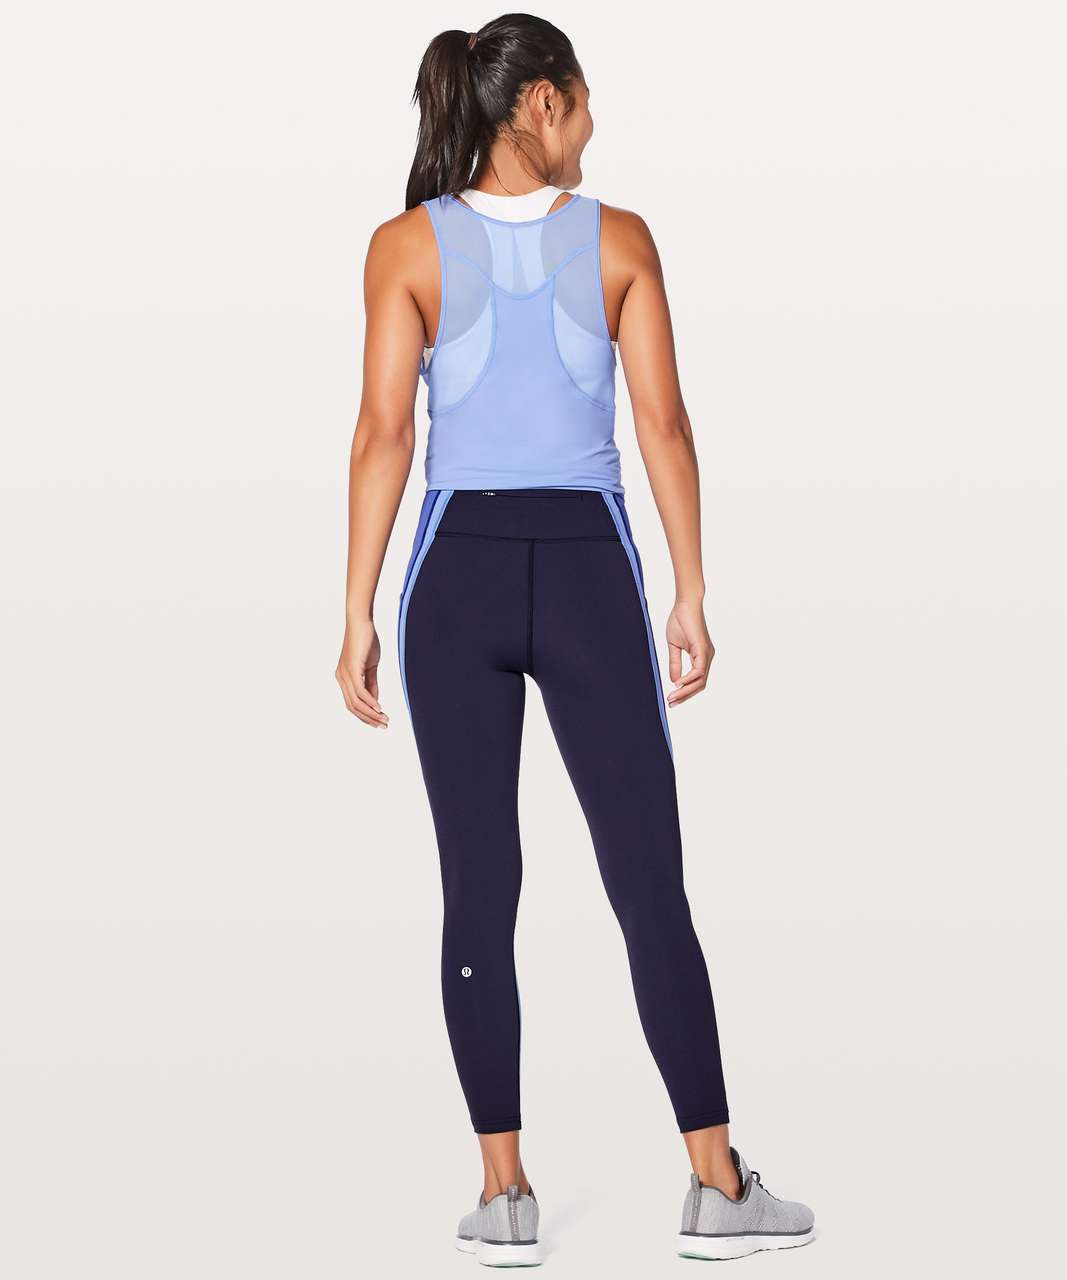 "Lululemon Wild Twist 7/8 Tight *25"" - Midnight Navy / Moroccan Blue / Light Horizon"